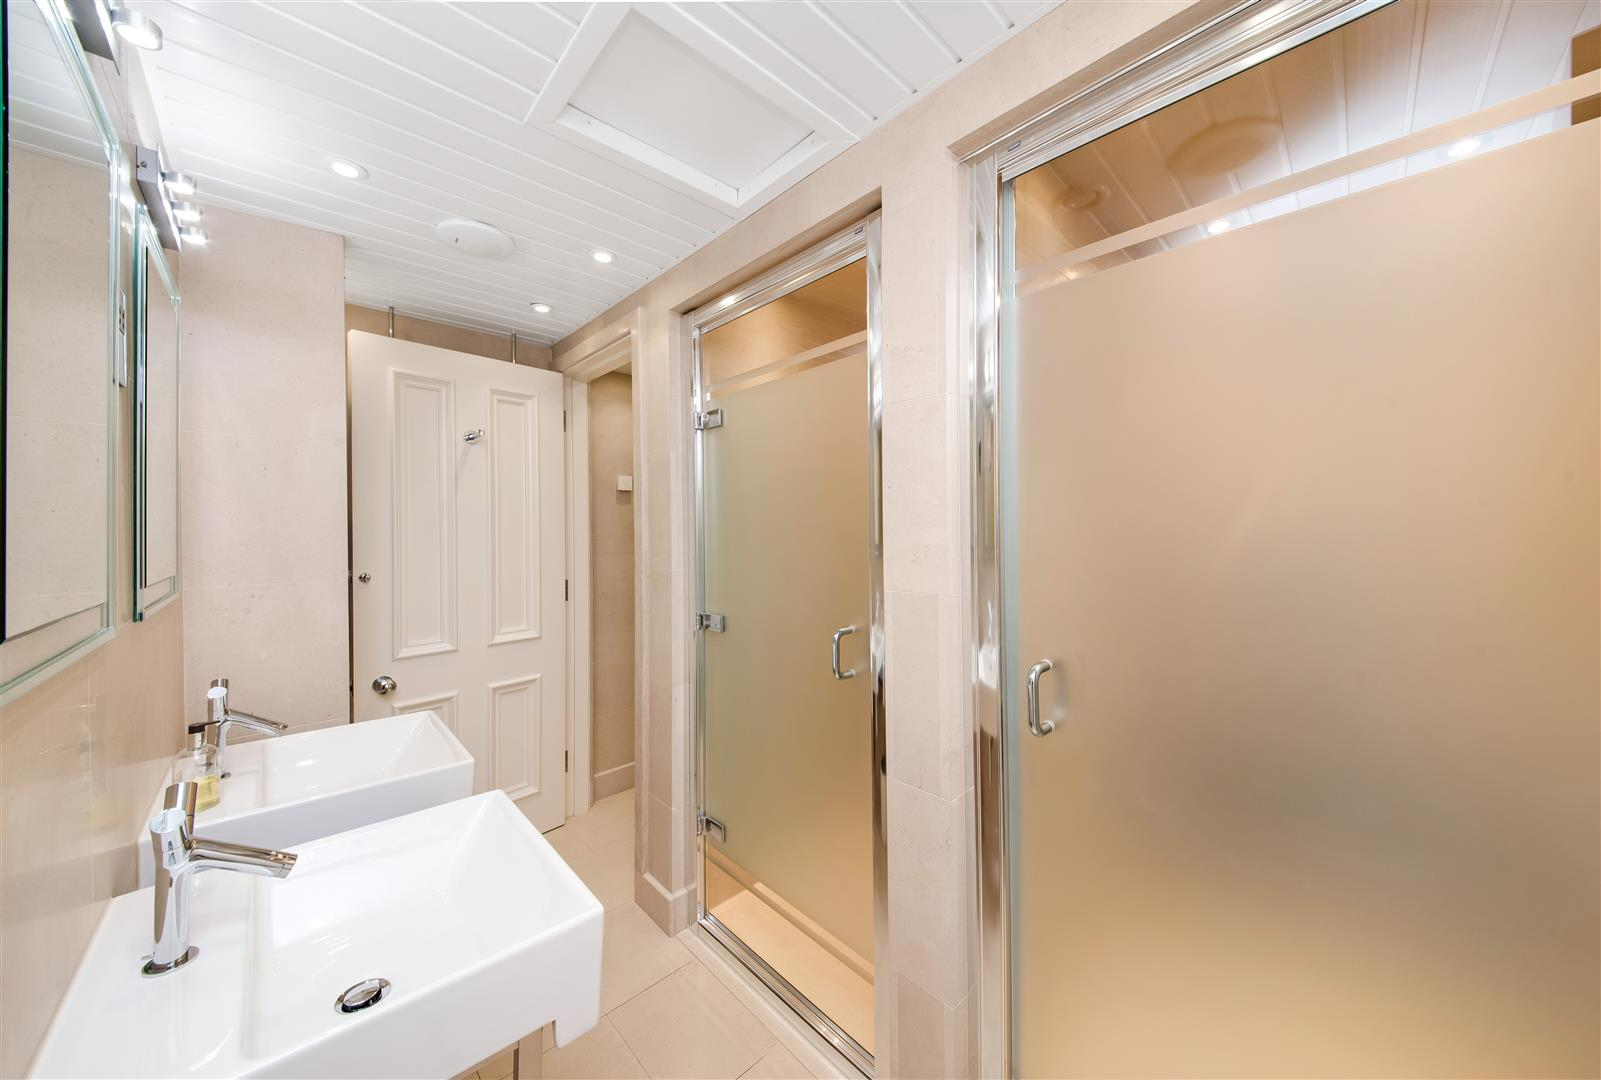 SHOWER/CHANGING ROOMS